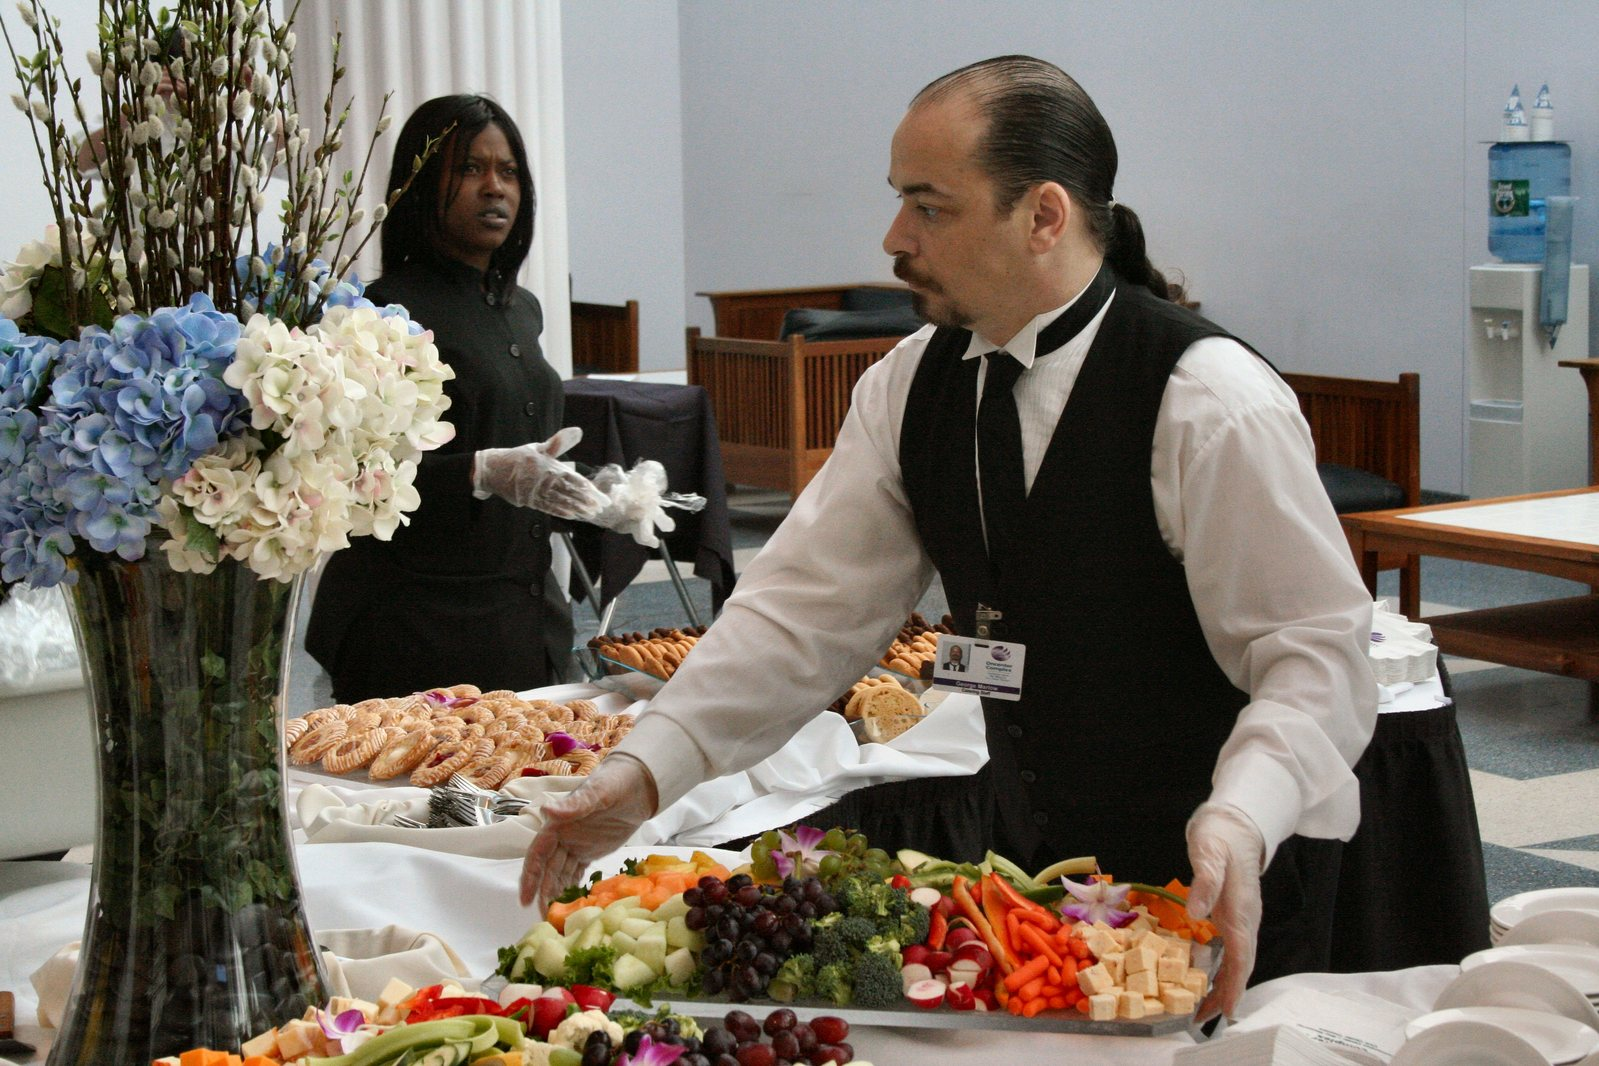 Catering staffers scurry to set tables for a social function in Syracuse NY. 2007-04-29.